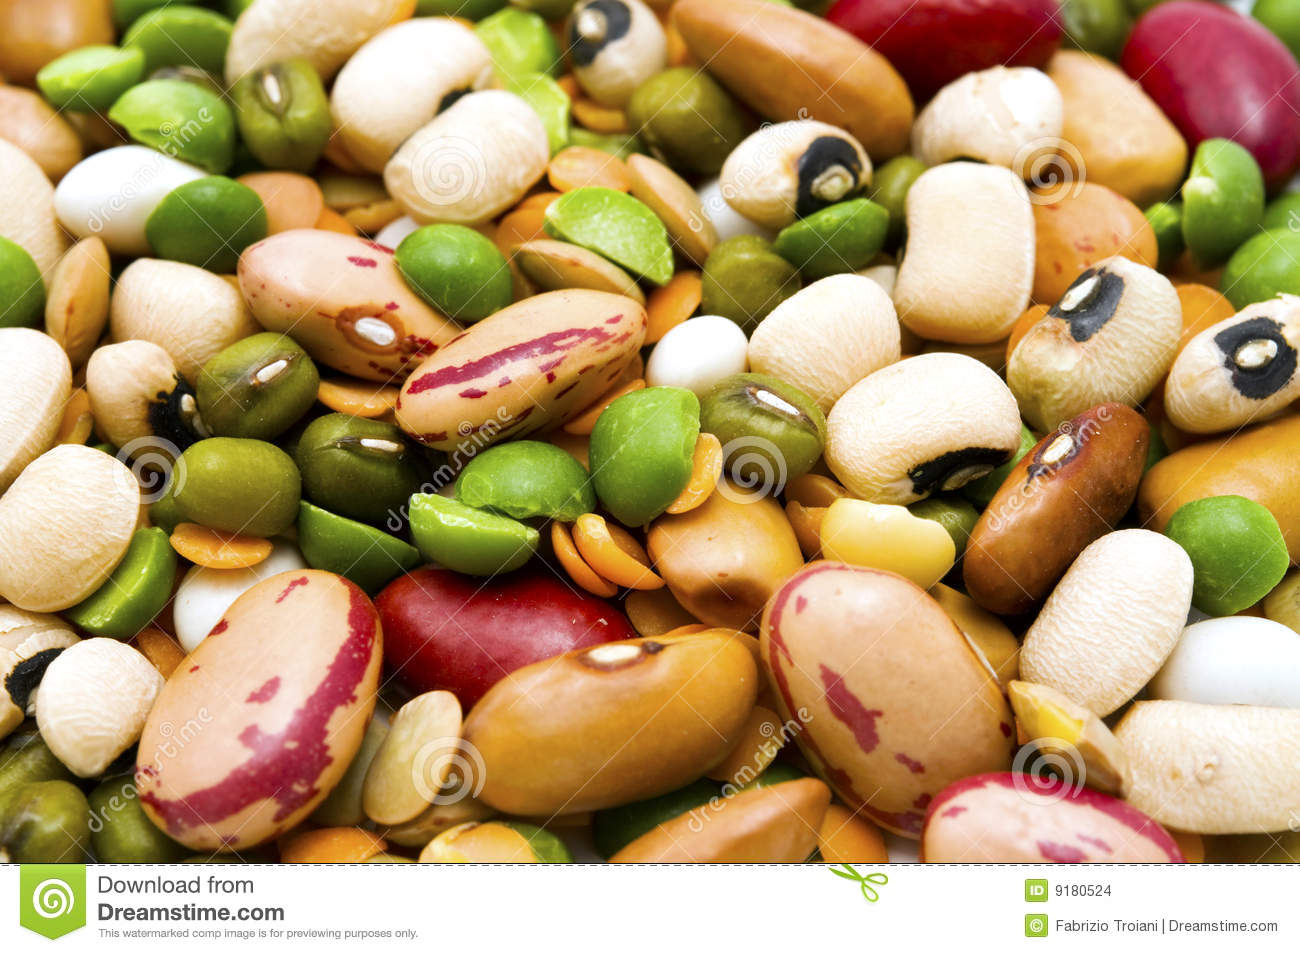 Dried Legumes And Cereals Stock Images - Image: 9180524